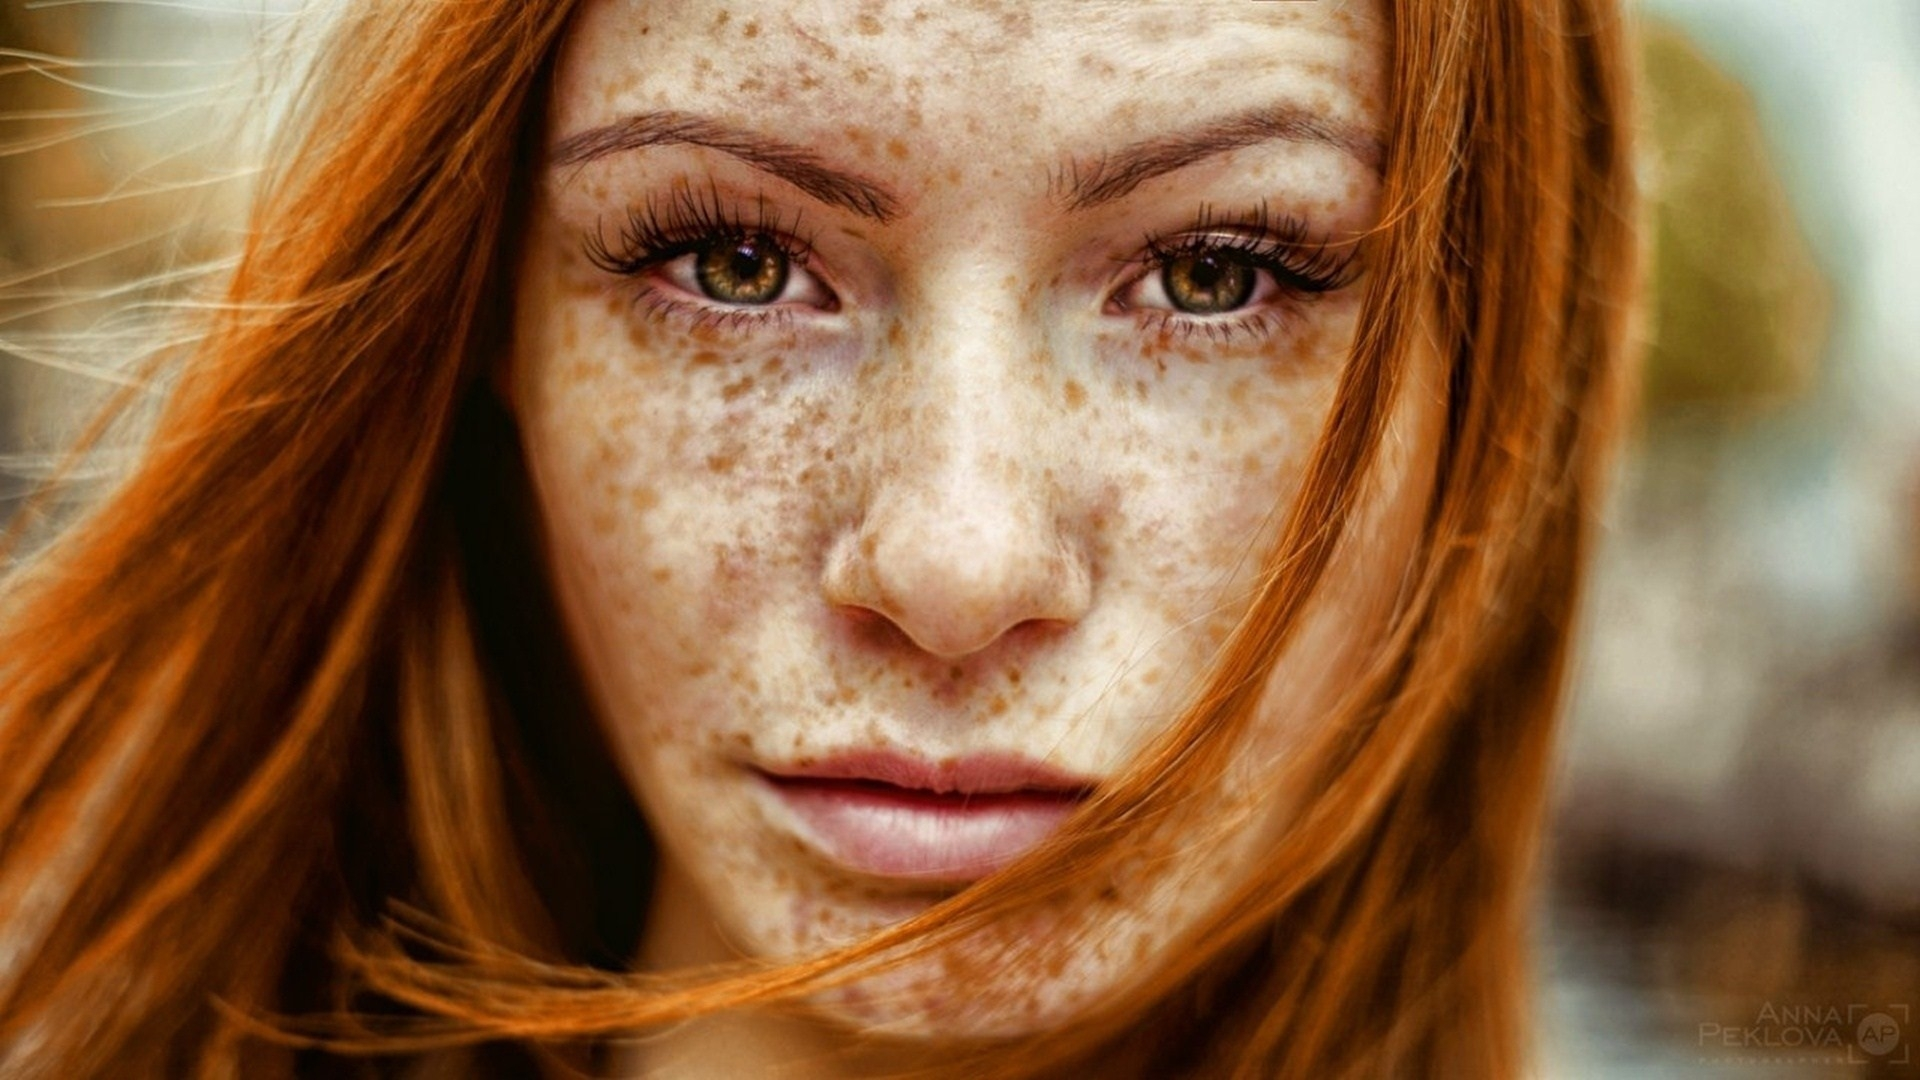 original wallpaper download: Brown-eyed girl with freckles - 1920x1080